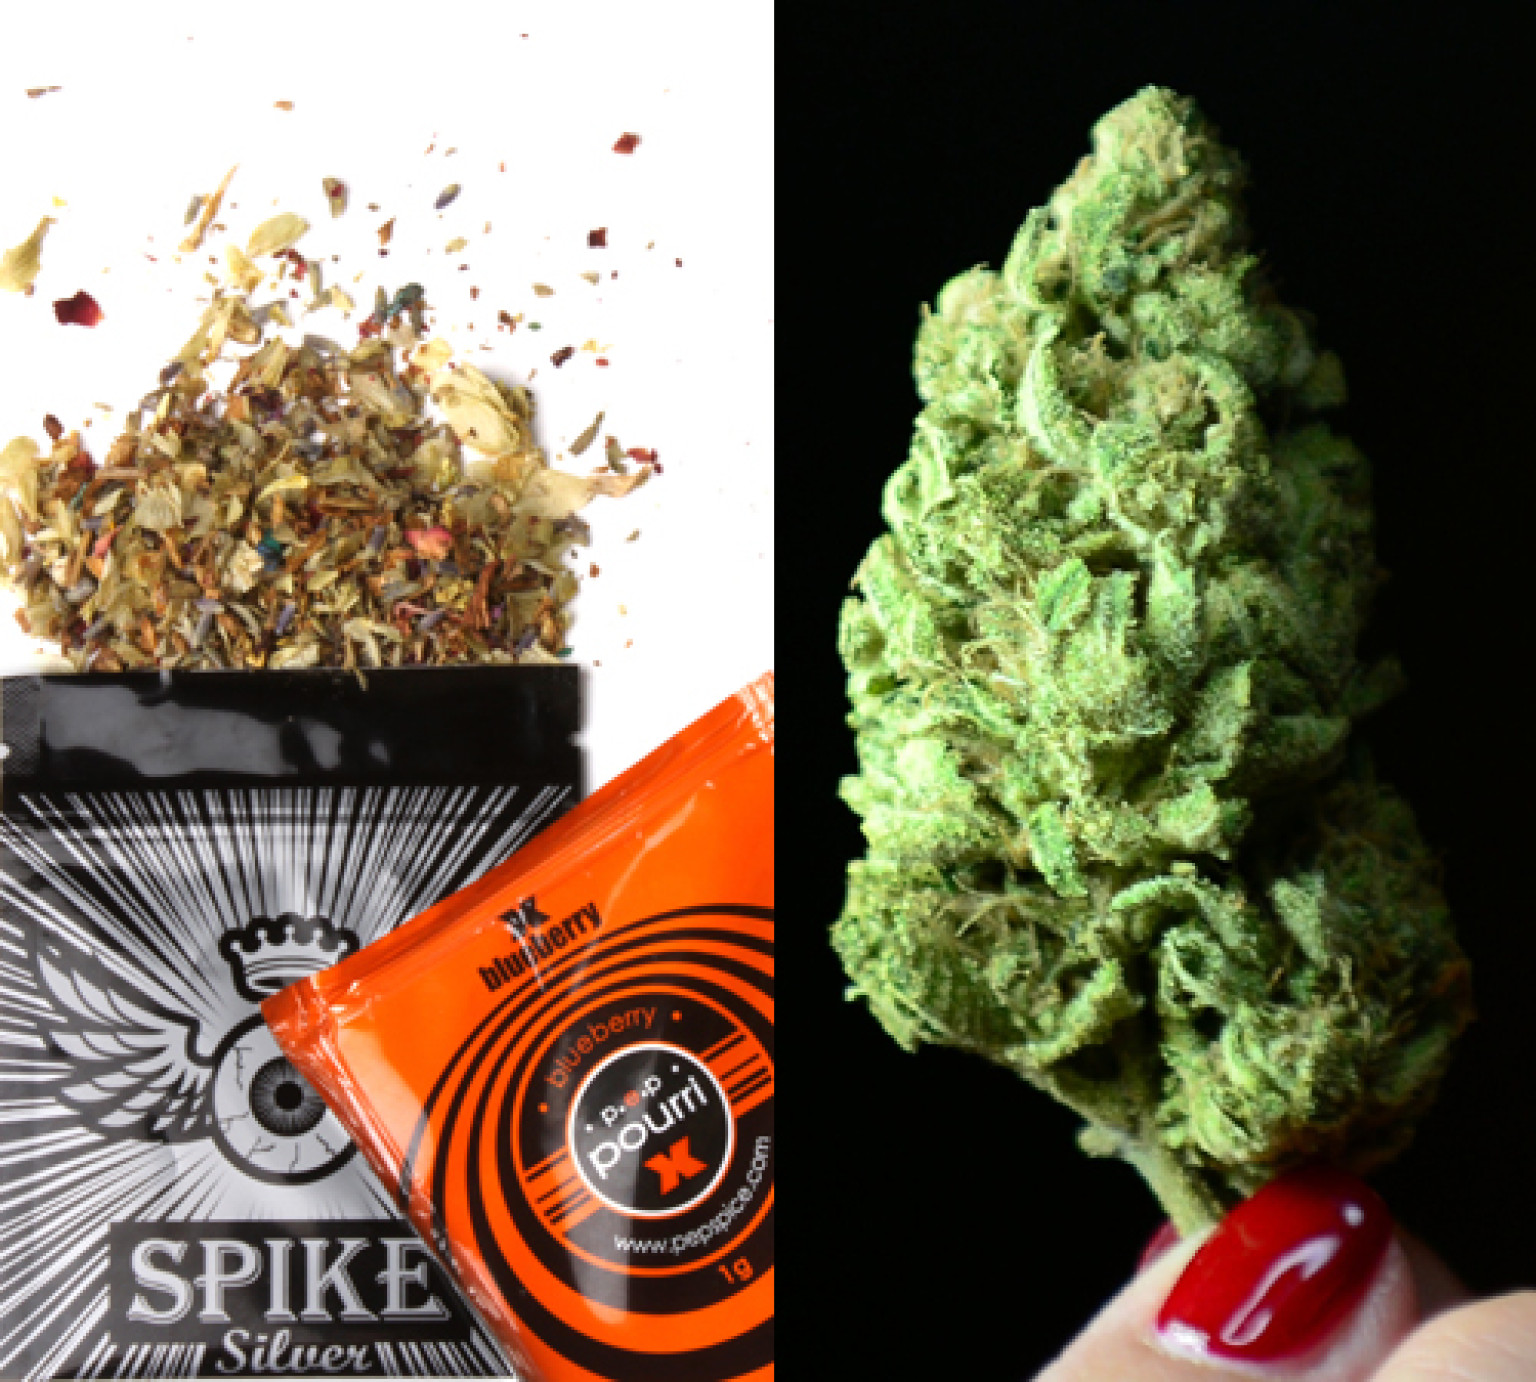 sythetic weed essay Open document below is an essay on synthetic weed from anti essays, your source for research papers, essays, and term paper examples.